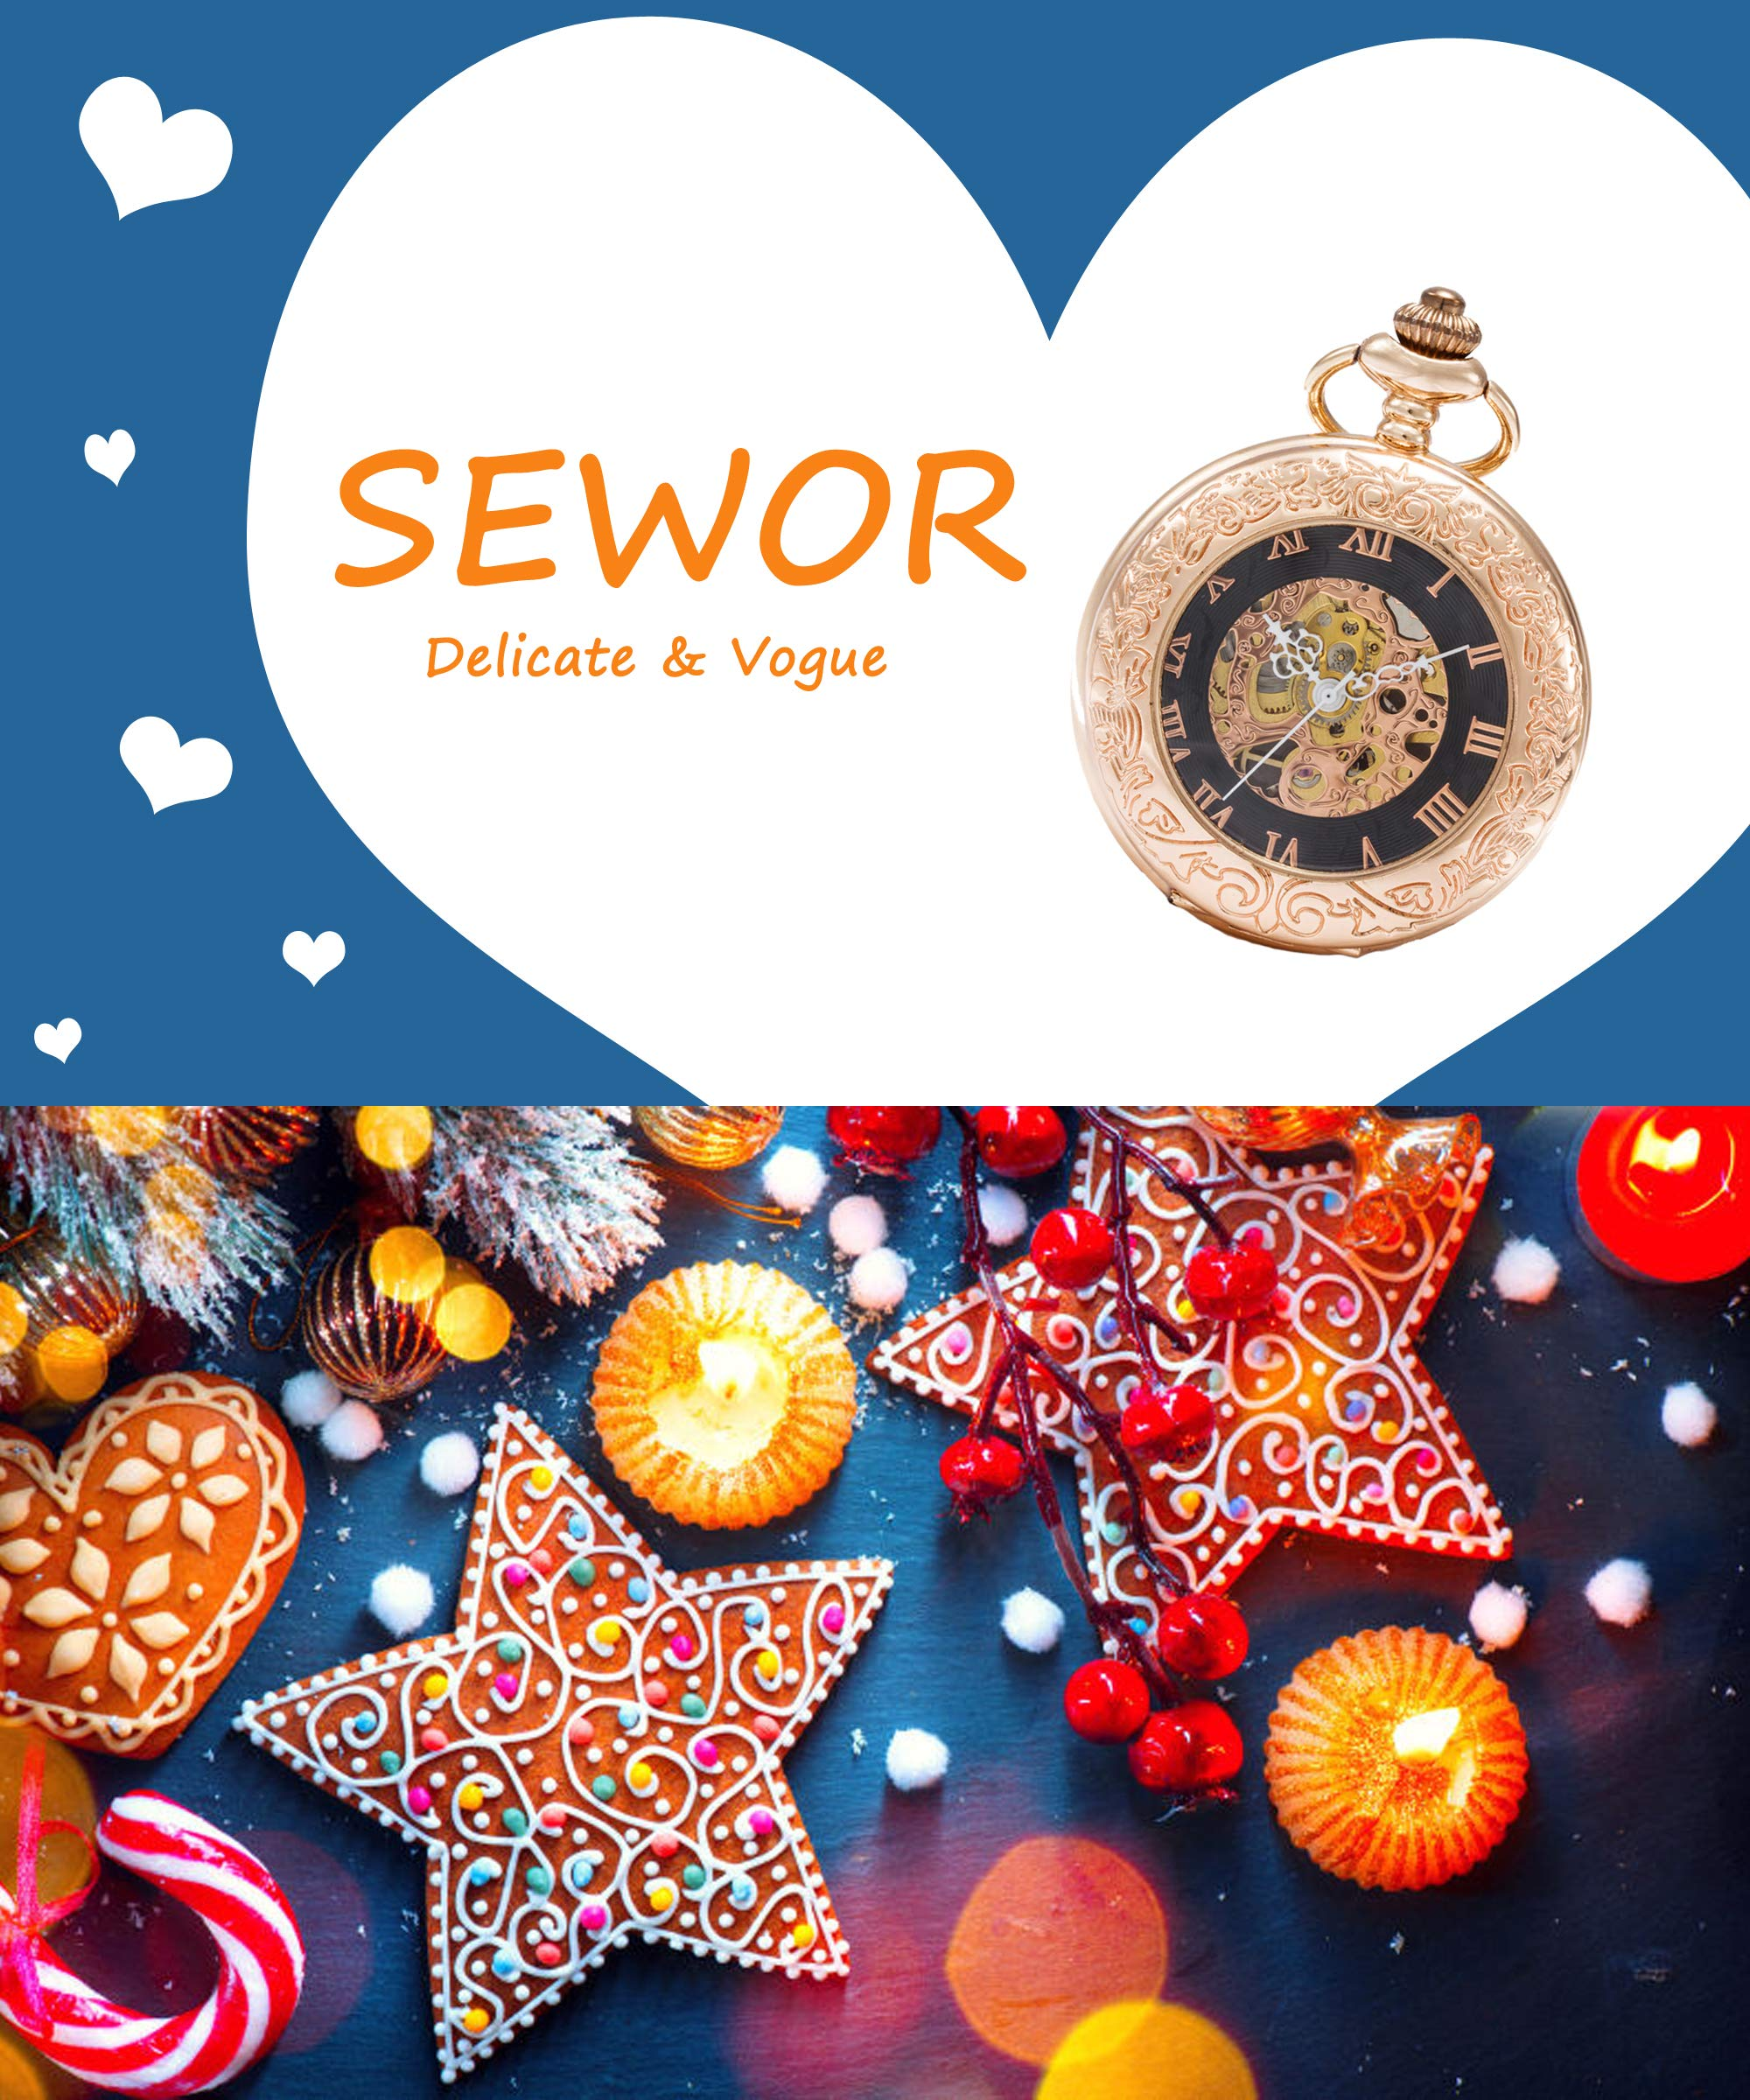 SEWOR Mens Dress Gentleman Vintage Magnifier Skeleton Pocket Watch Mechanical Hand Wind with Great Gift Box (Rose Gold Case)